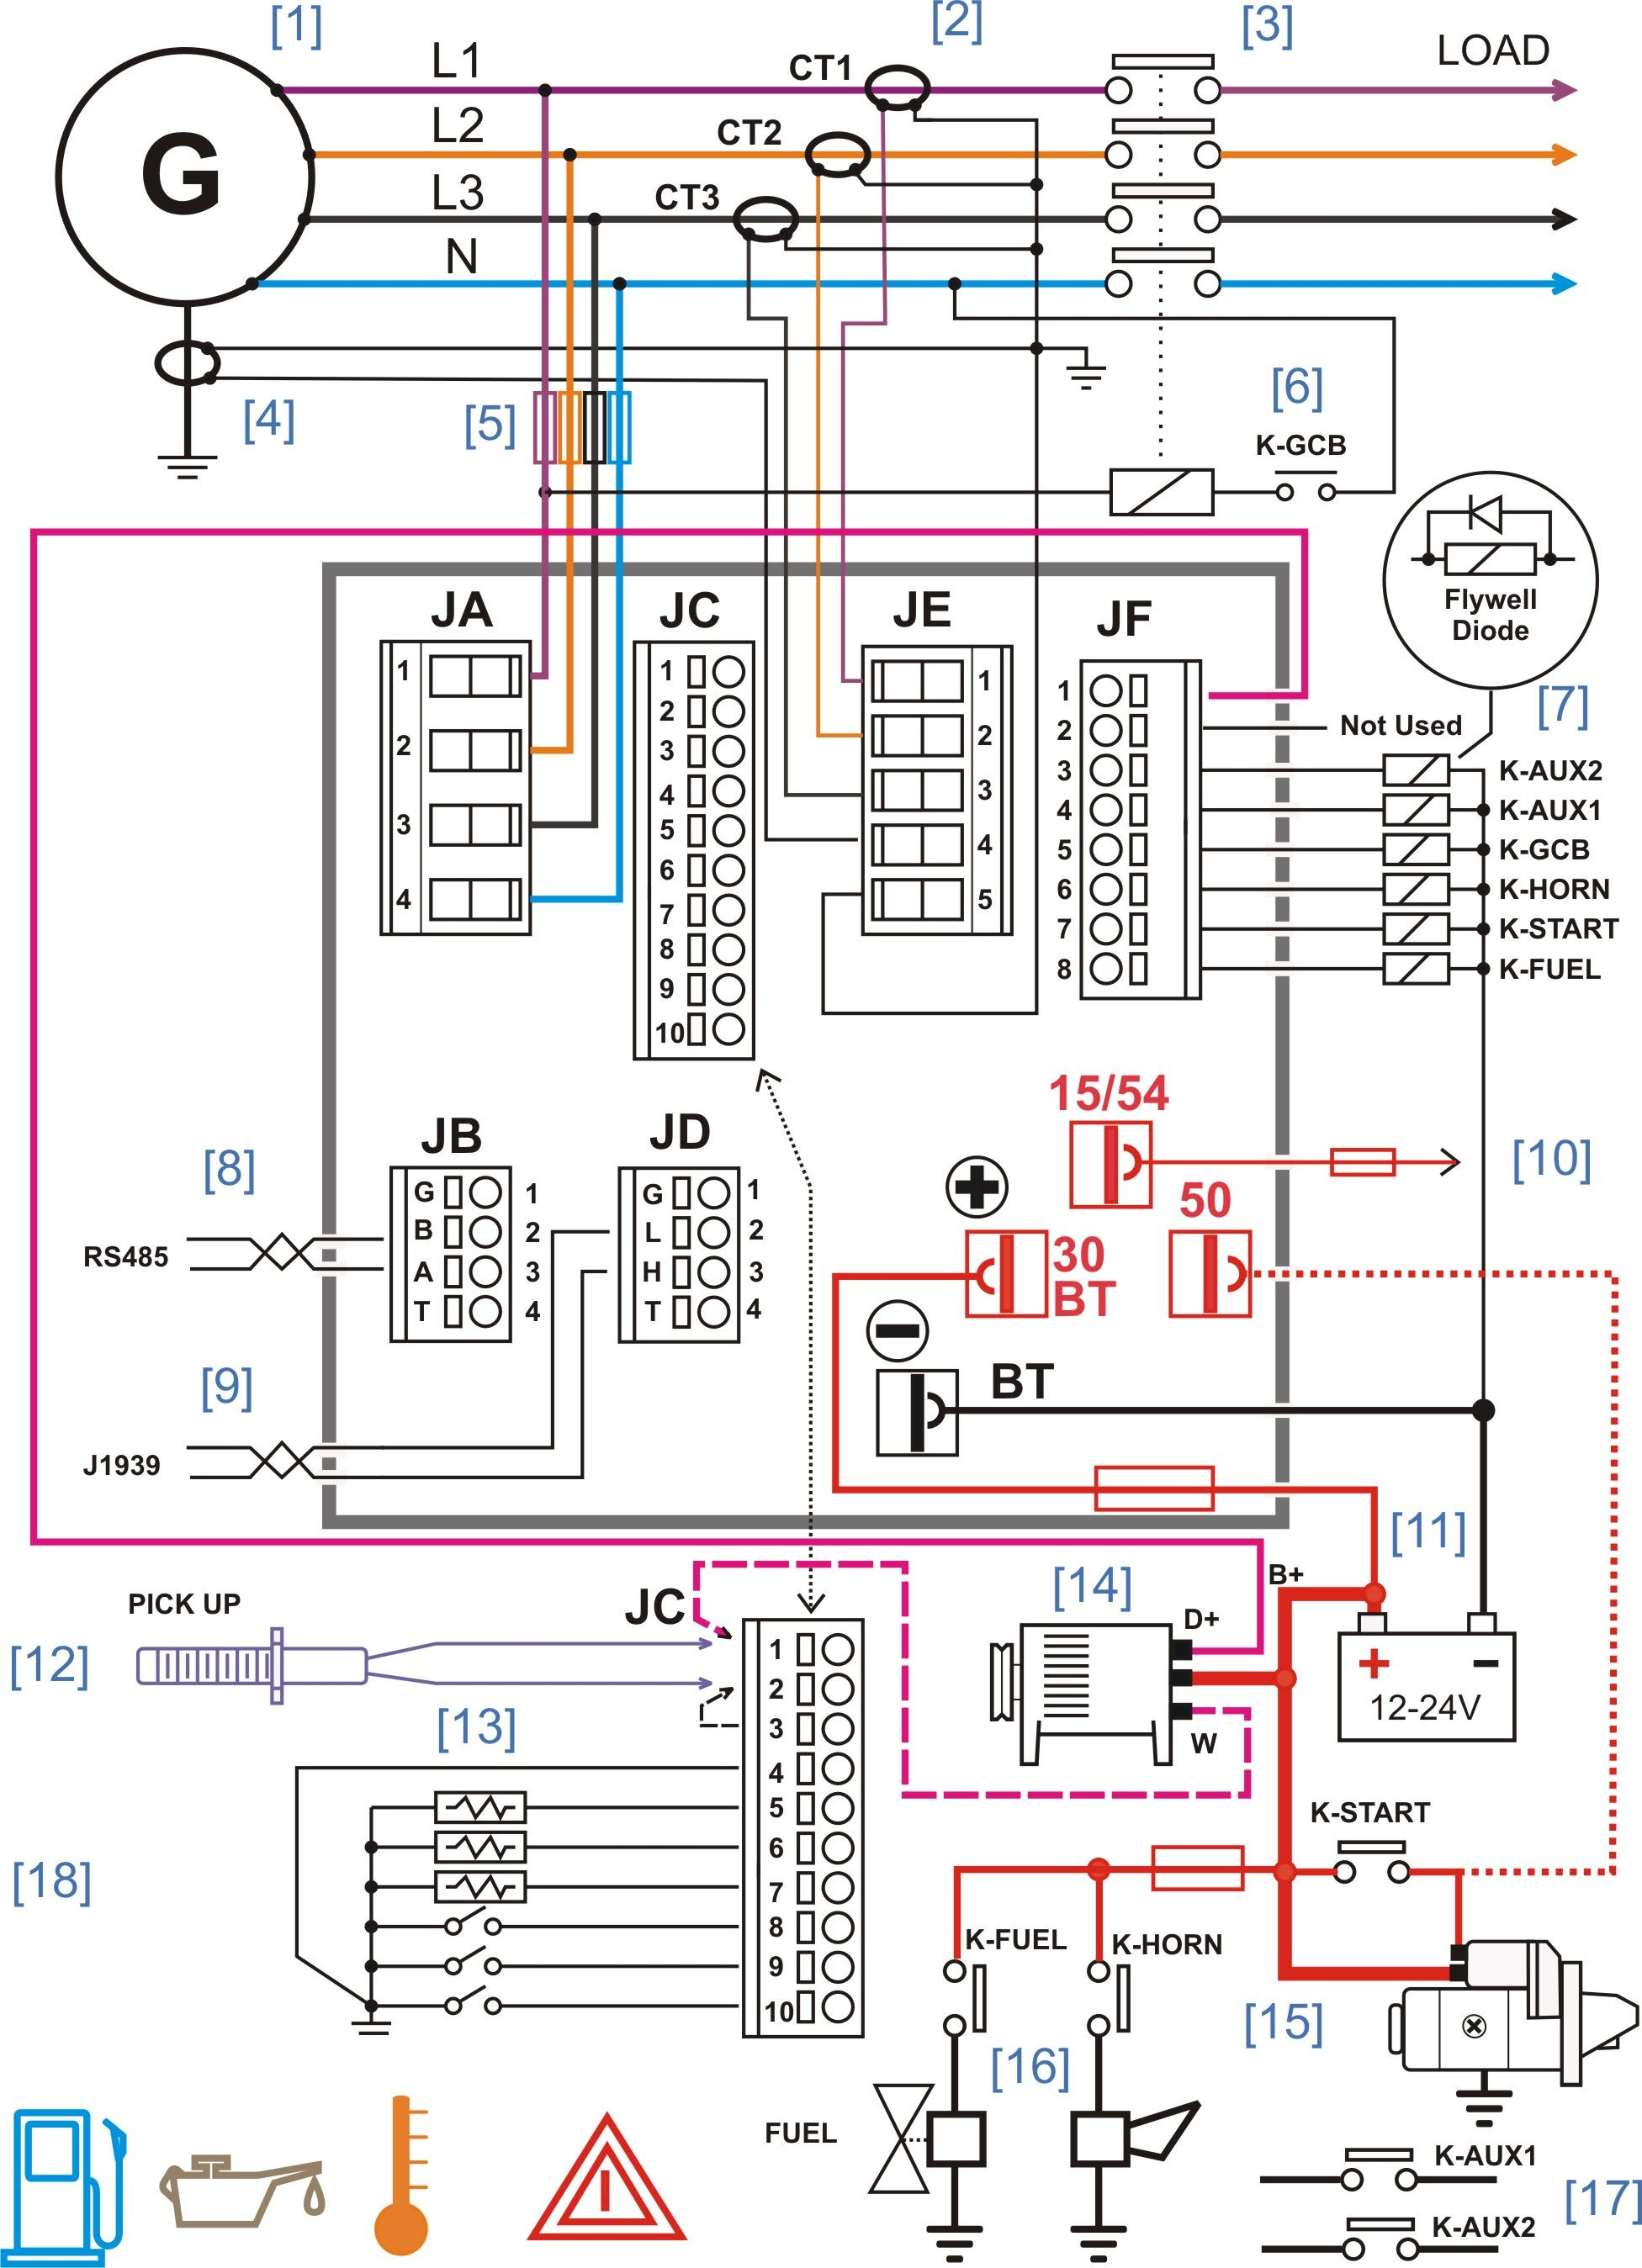 Control Wiring Schematic Symbols Best Electrical Circuit Diagram Automotive Diesel Generator Panel Generators In Rh Pinterest Com Industrial